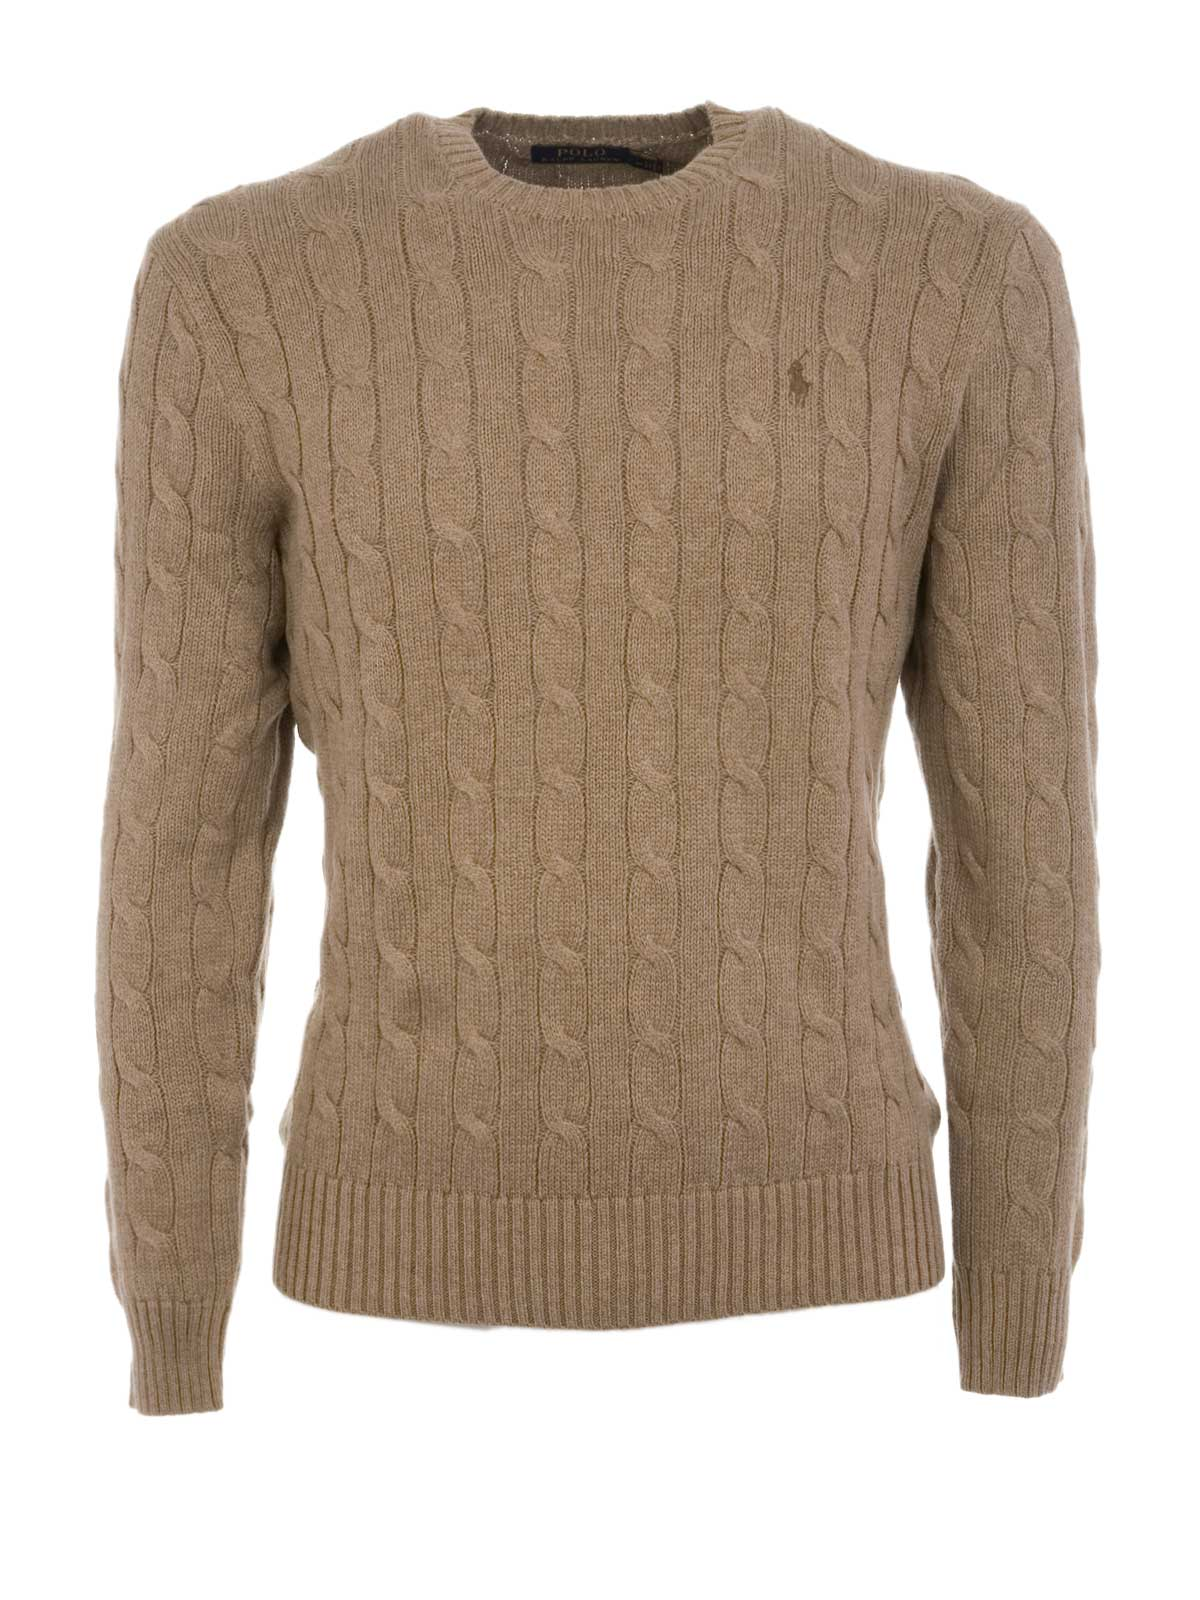 4940124d6435 POLO RALPH LAUREN Cable-Knit Cotone Sweater Fall Sand Heather ...